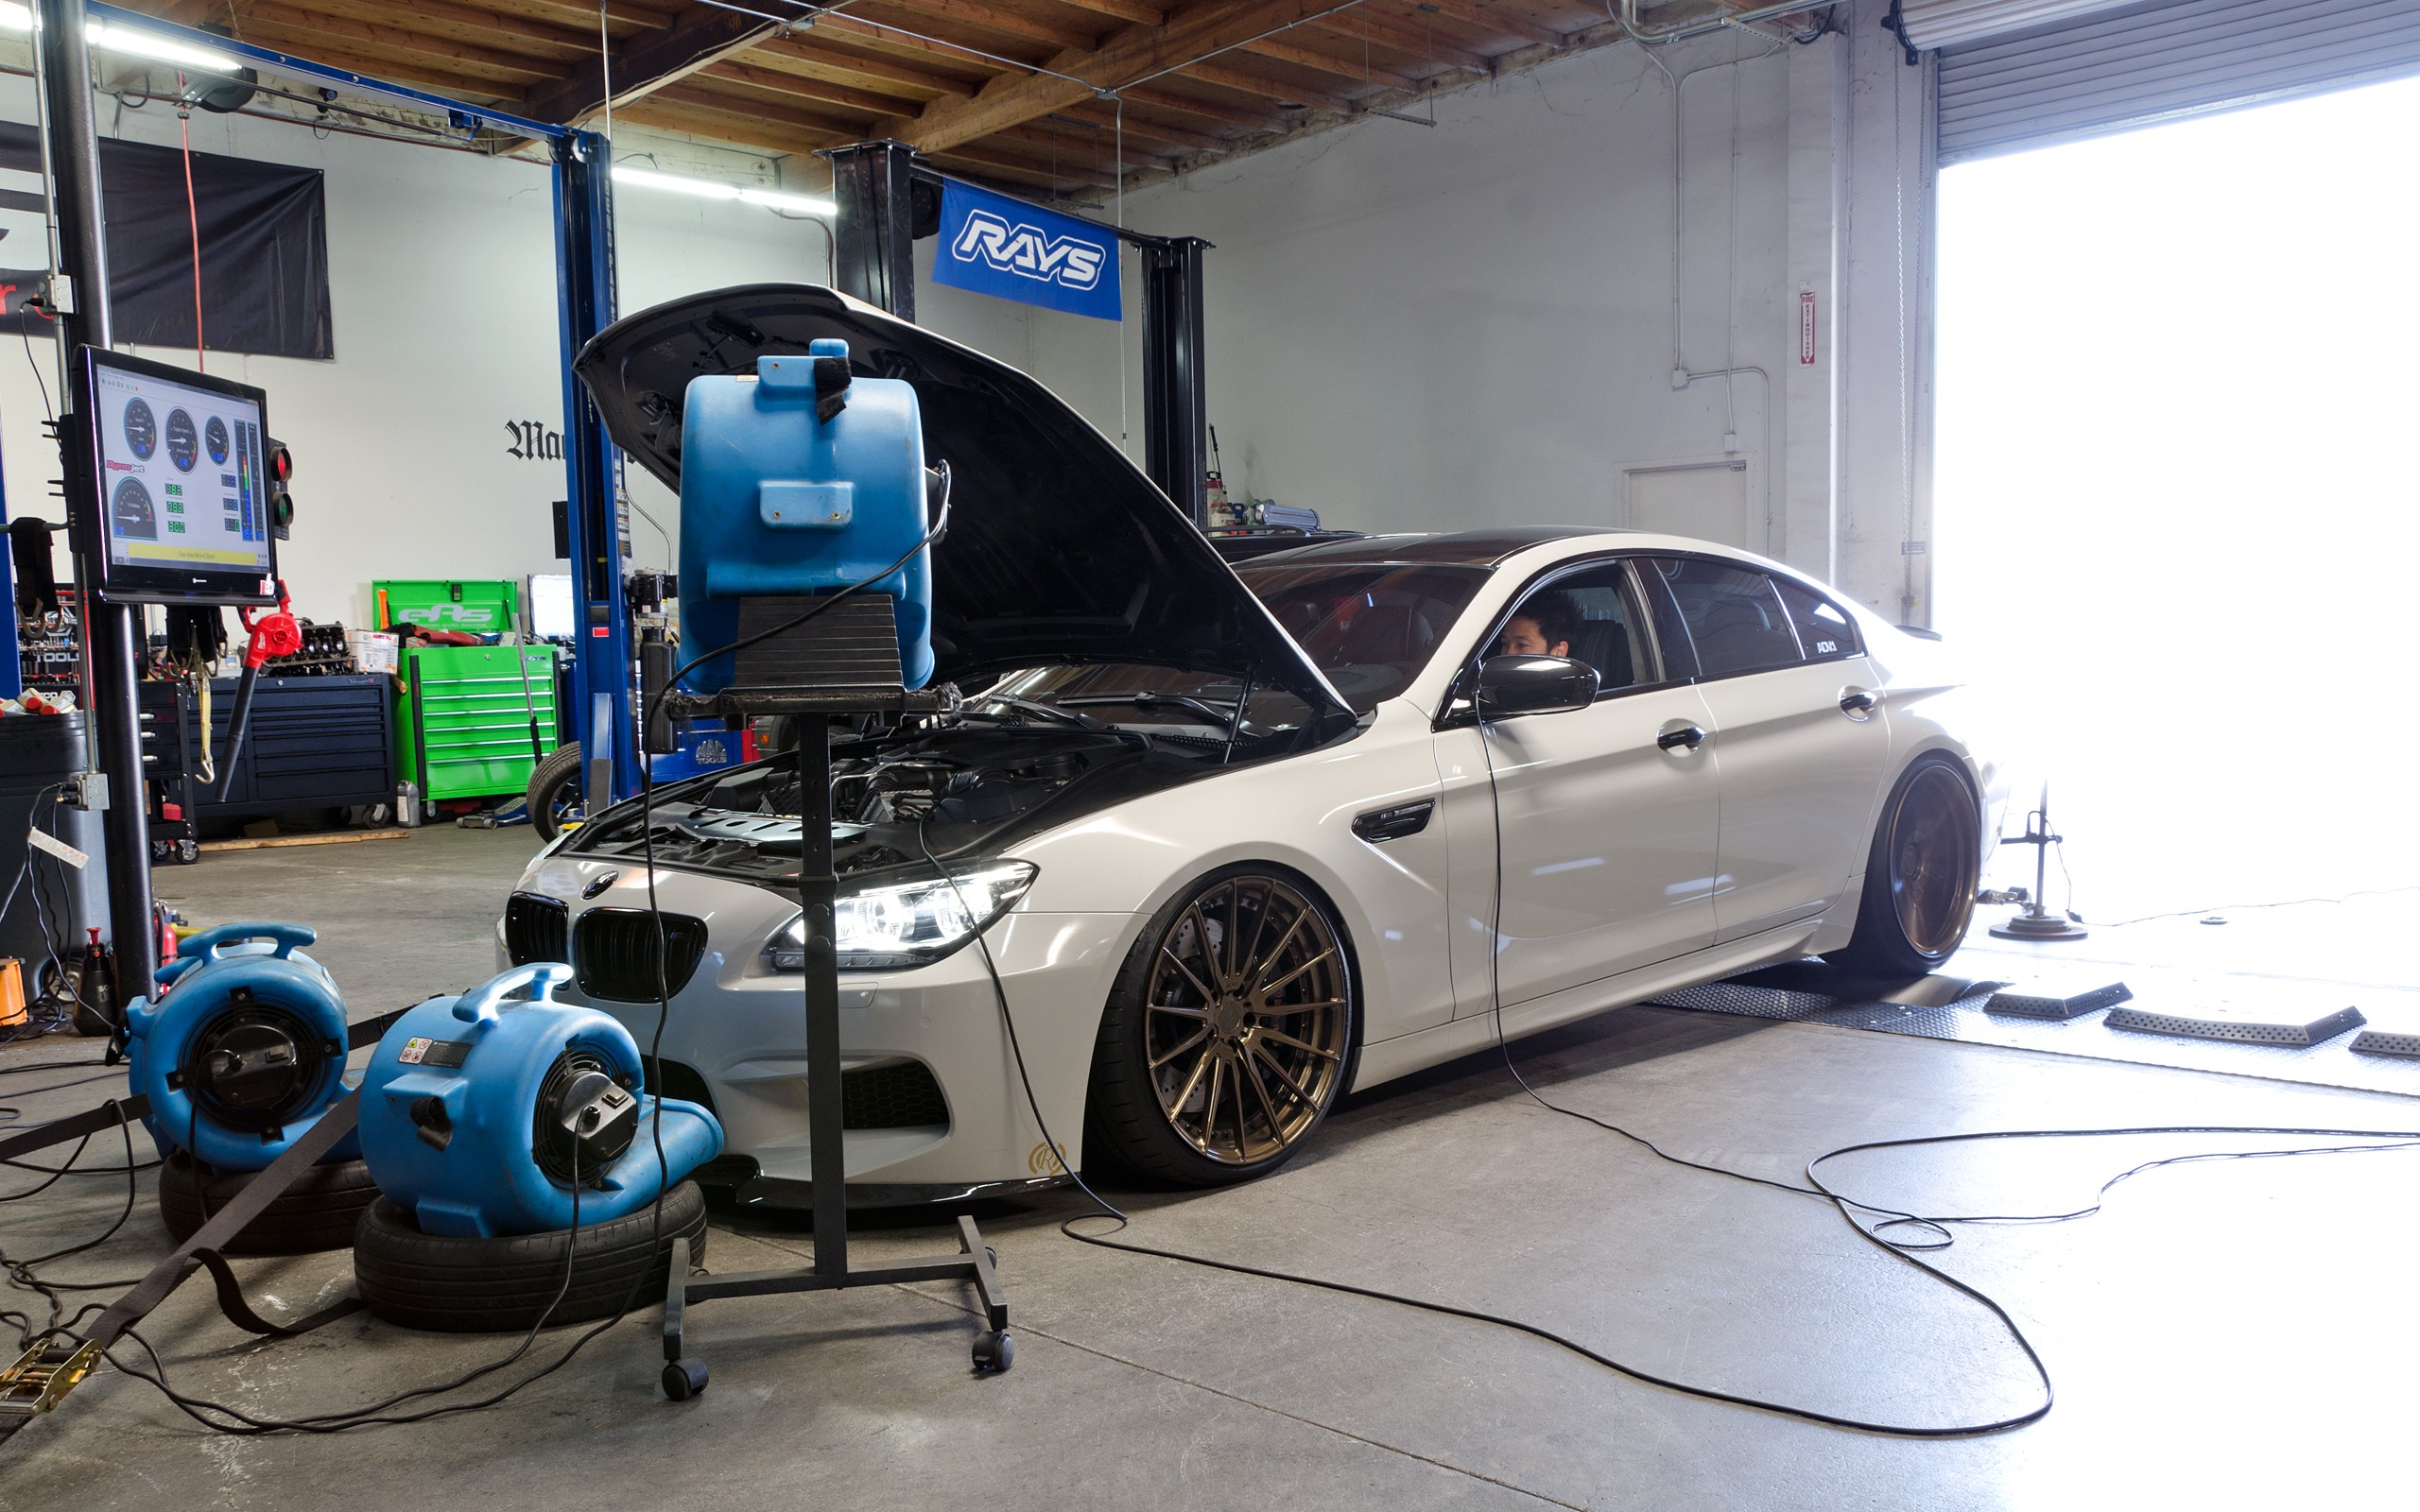 Bmw M6 Gran Coupe Hops On A Dyno And Nearly Blows It To Pieces 2014 Fuse Box